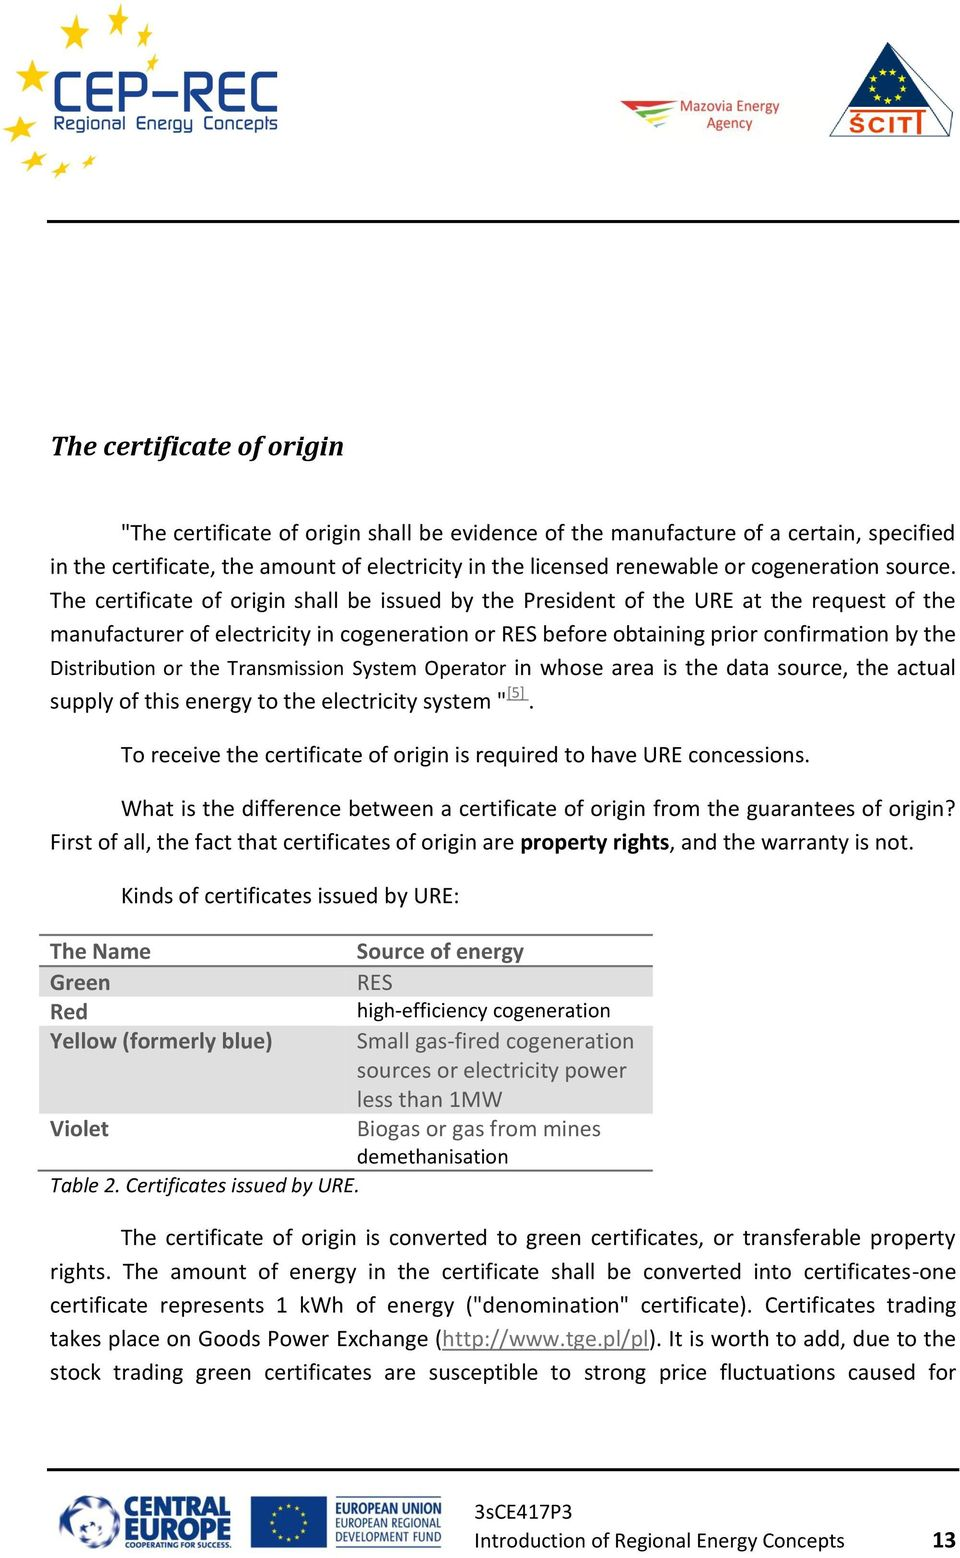 The certificate of origin shall be issued by the President of the URE at the request of the manufacturer of electricity in cogeneration or RES before obtaining prior confirmation by the Distribution